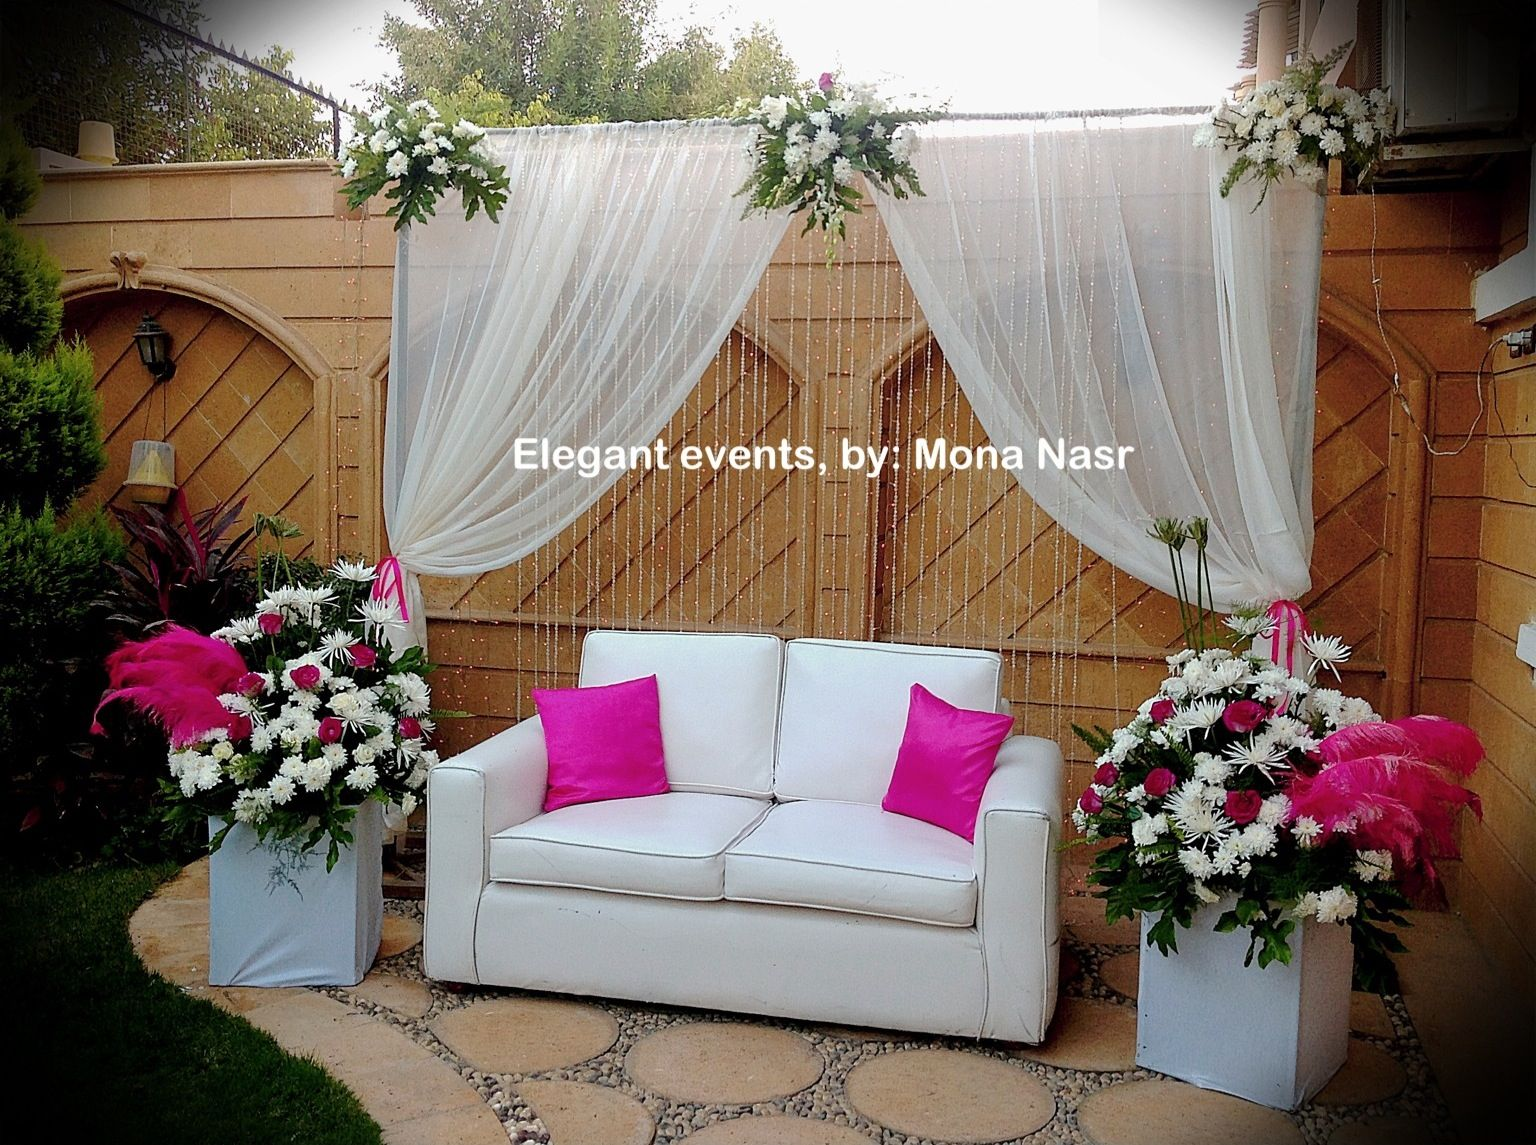 Home Engagement Decoration Ideas Part - 30: Home Engagement Kosha. Elegant Events, By: Mona Nasr